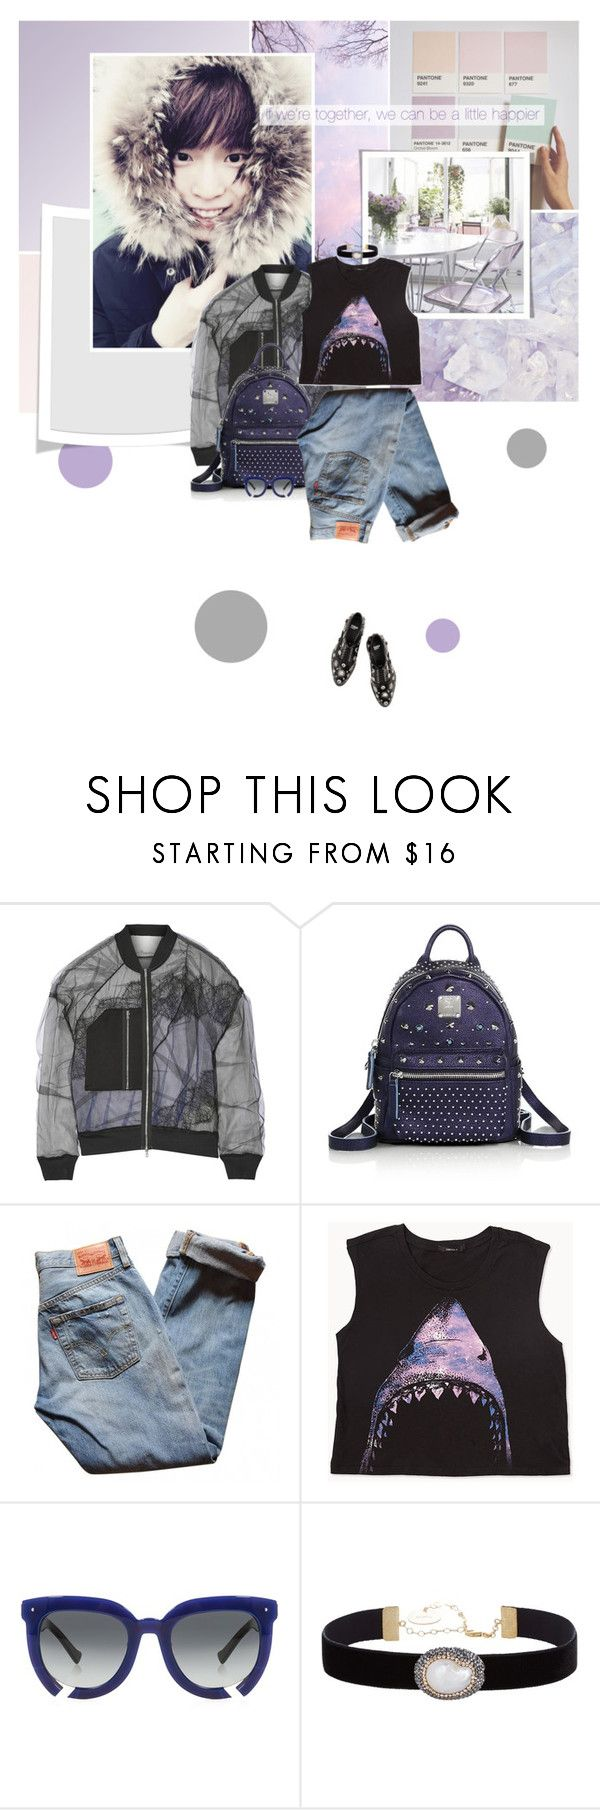 """""""Without You"""" by bibibaubau ❤ liked on Polyvore featuring 3.1 Phillip Lim, MCM, Levi's, Forever 21, Grey Ant, Soru Jewellery and Toga"""